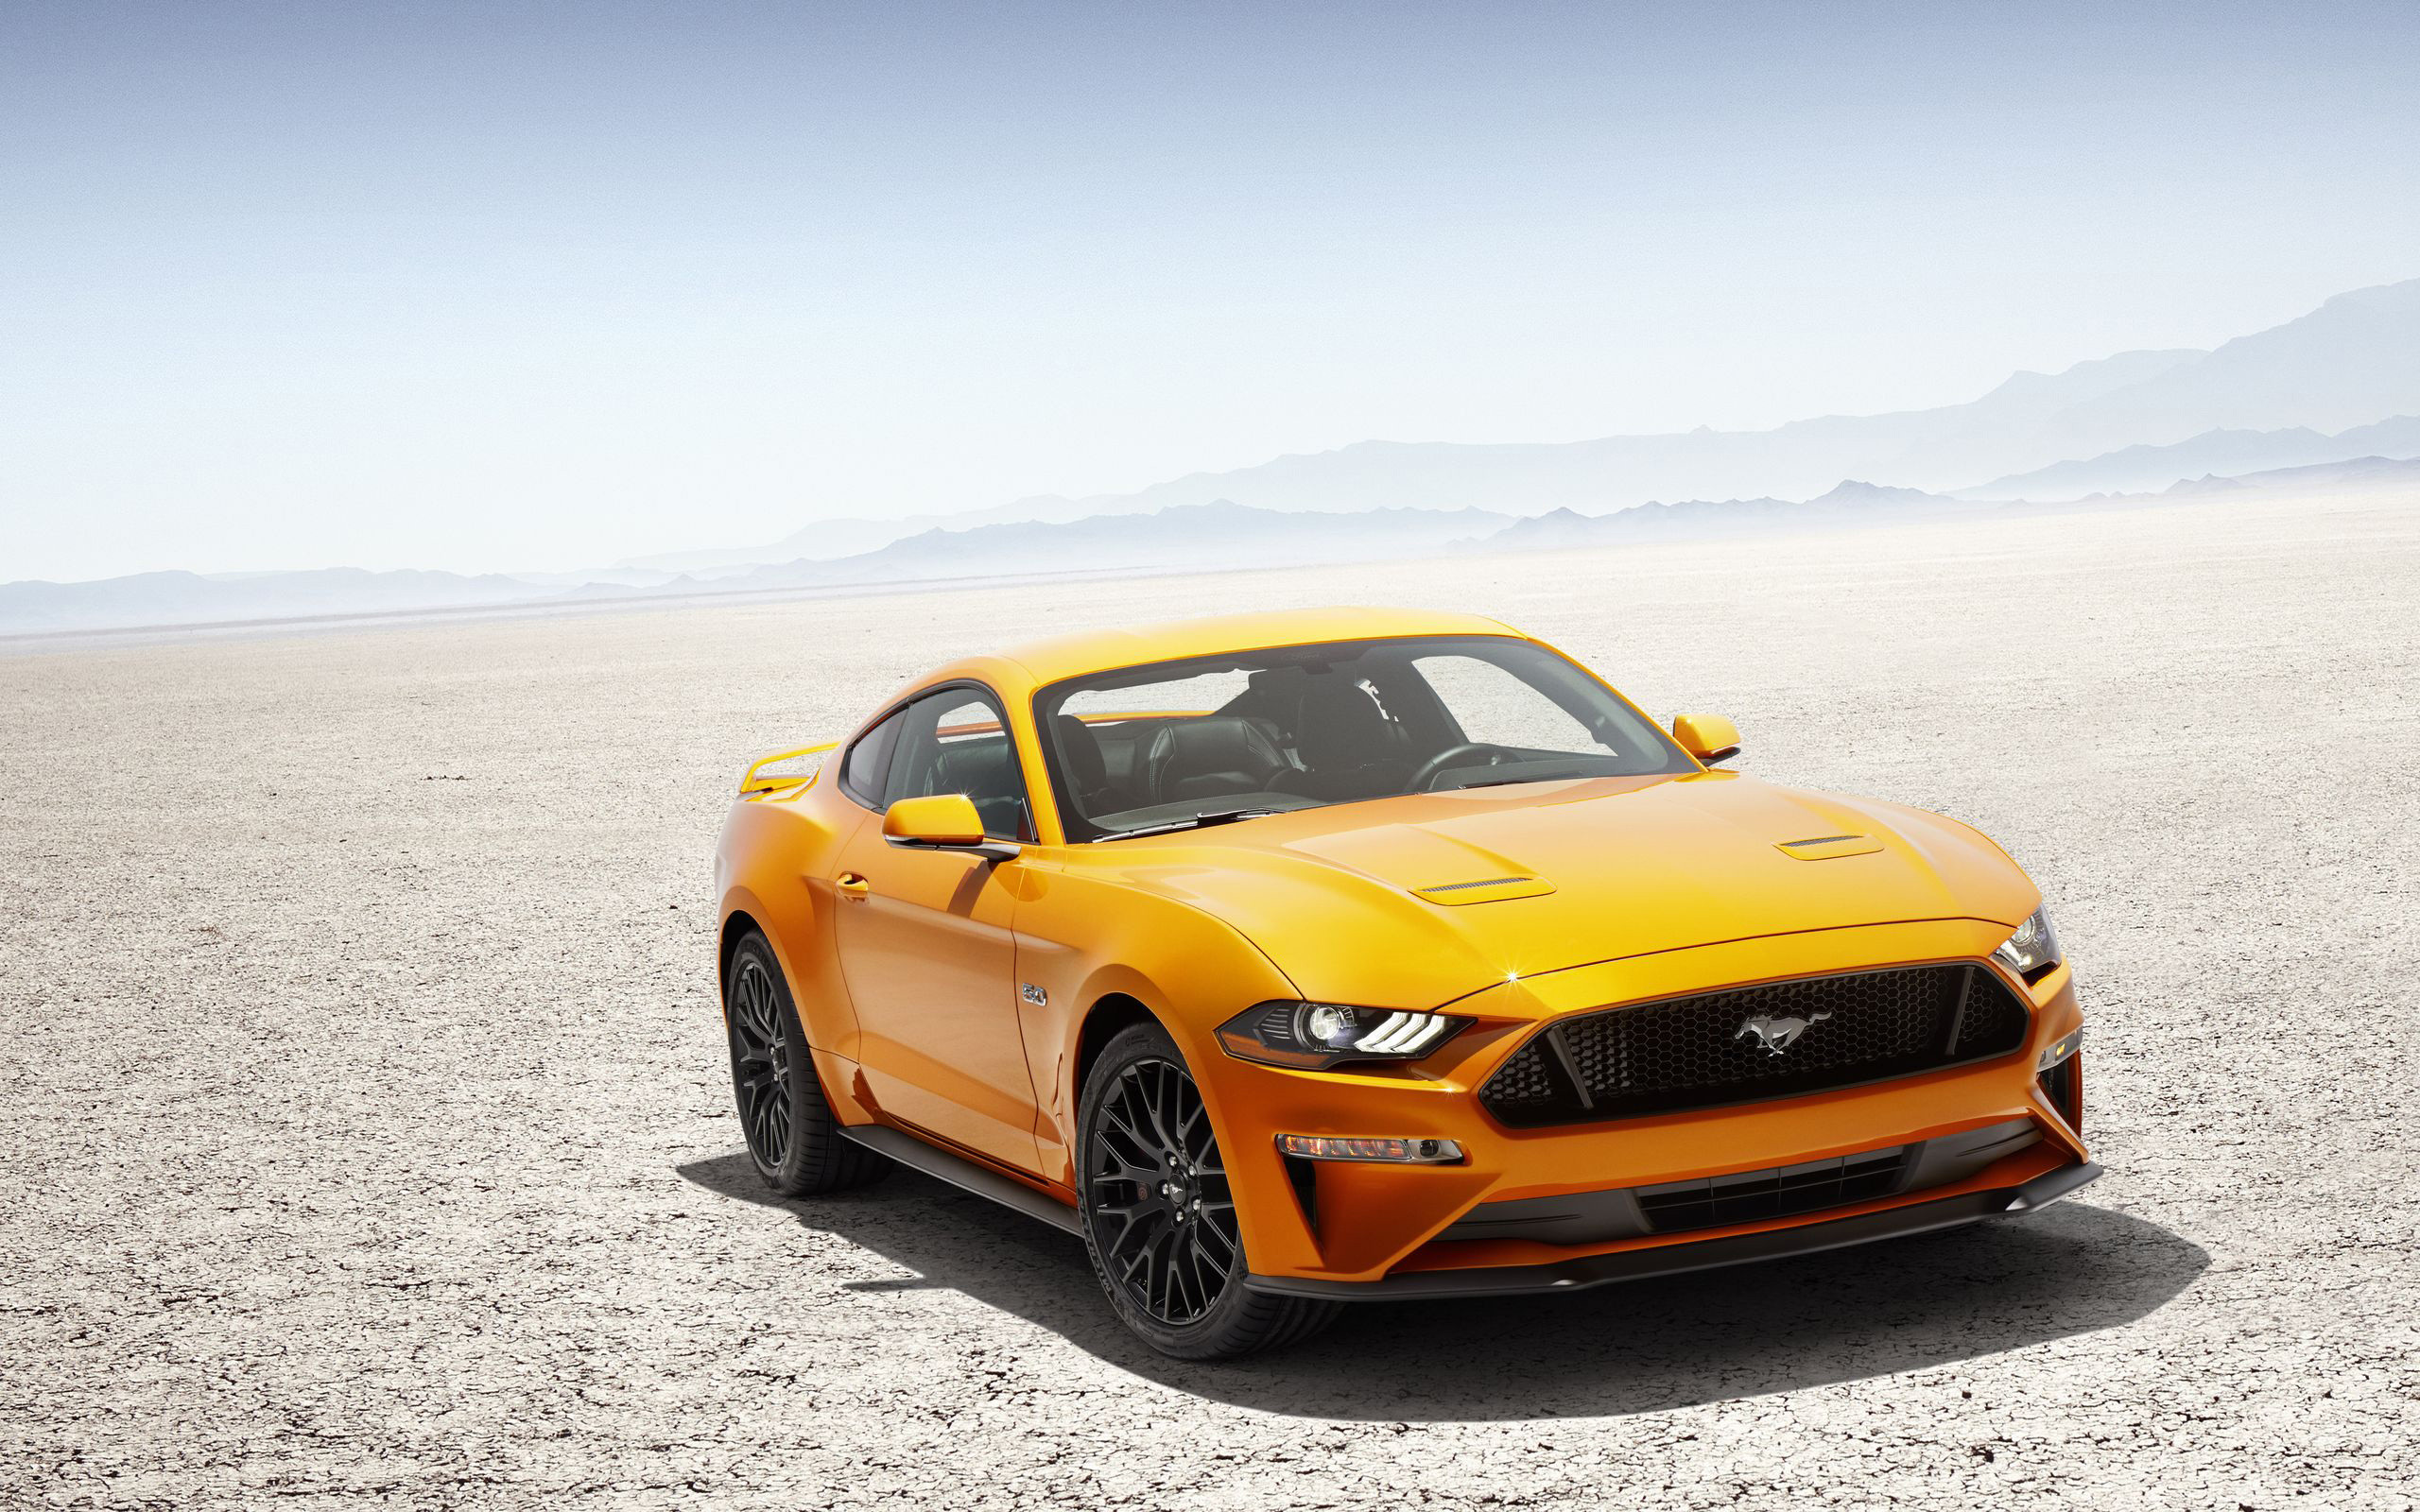 Res: 2560x1600, Ford Mustang V8 GT 2018